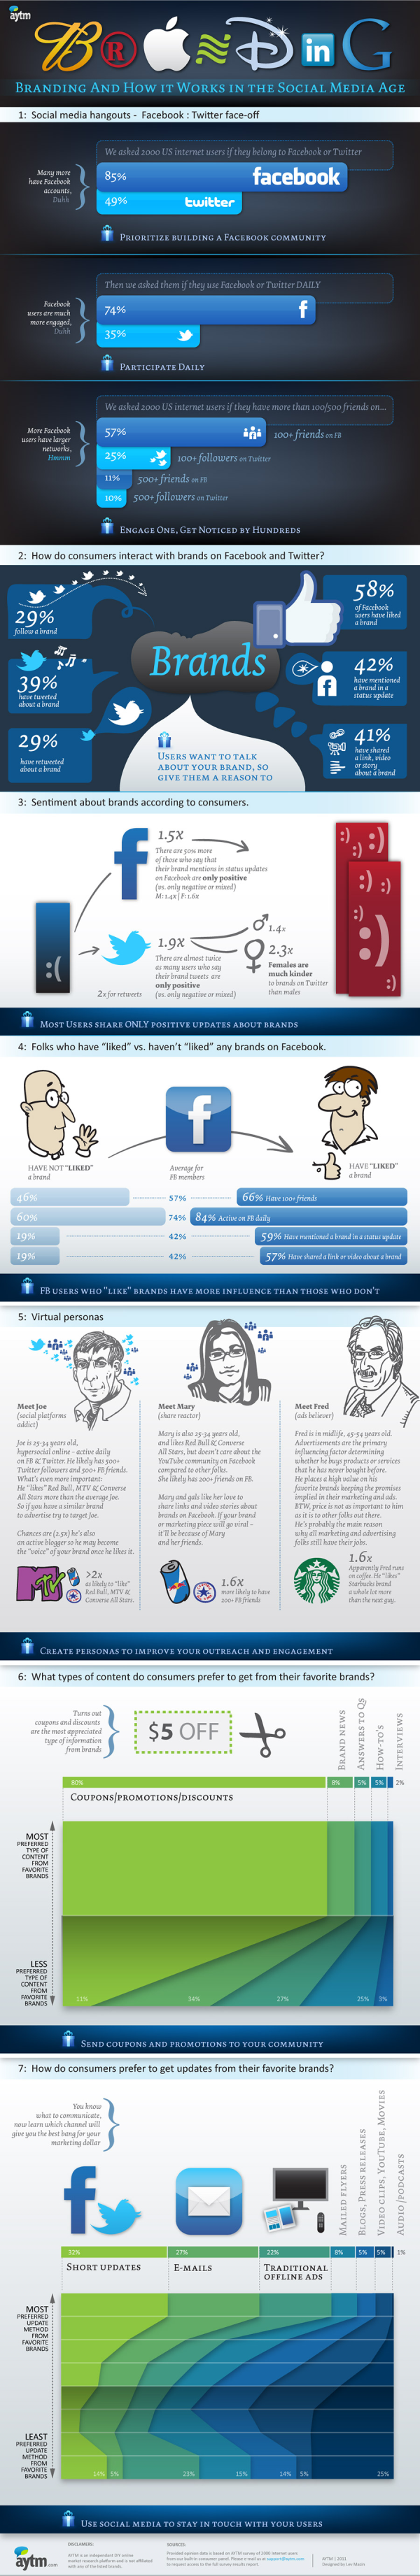 21 Captivating Social Media Stats: How People Interact With Brands [INFOGRAPHIC]